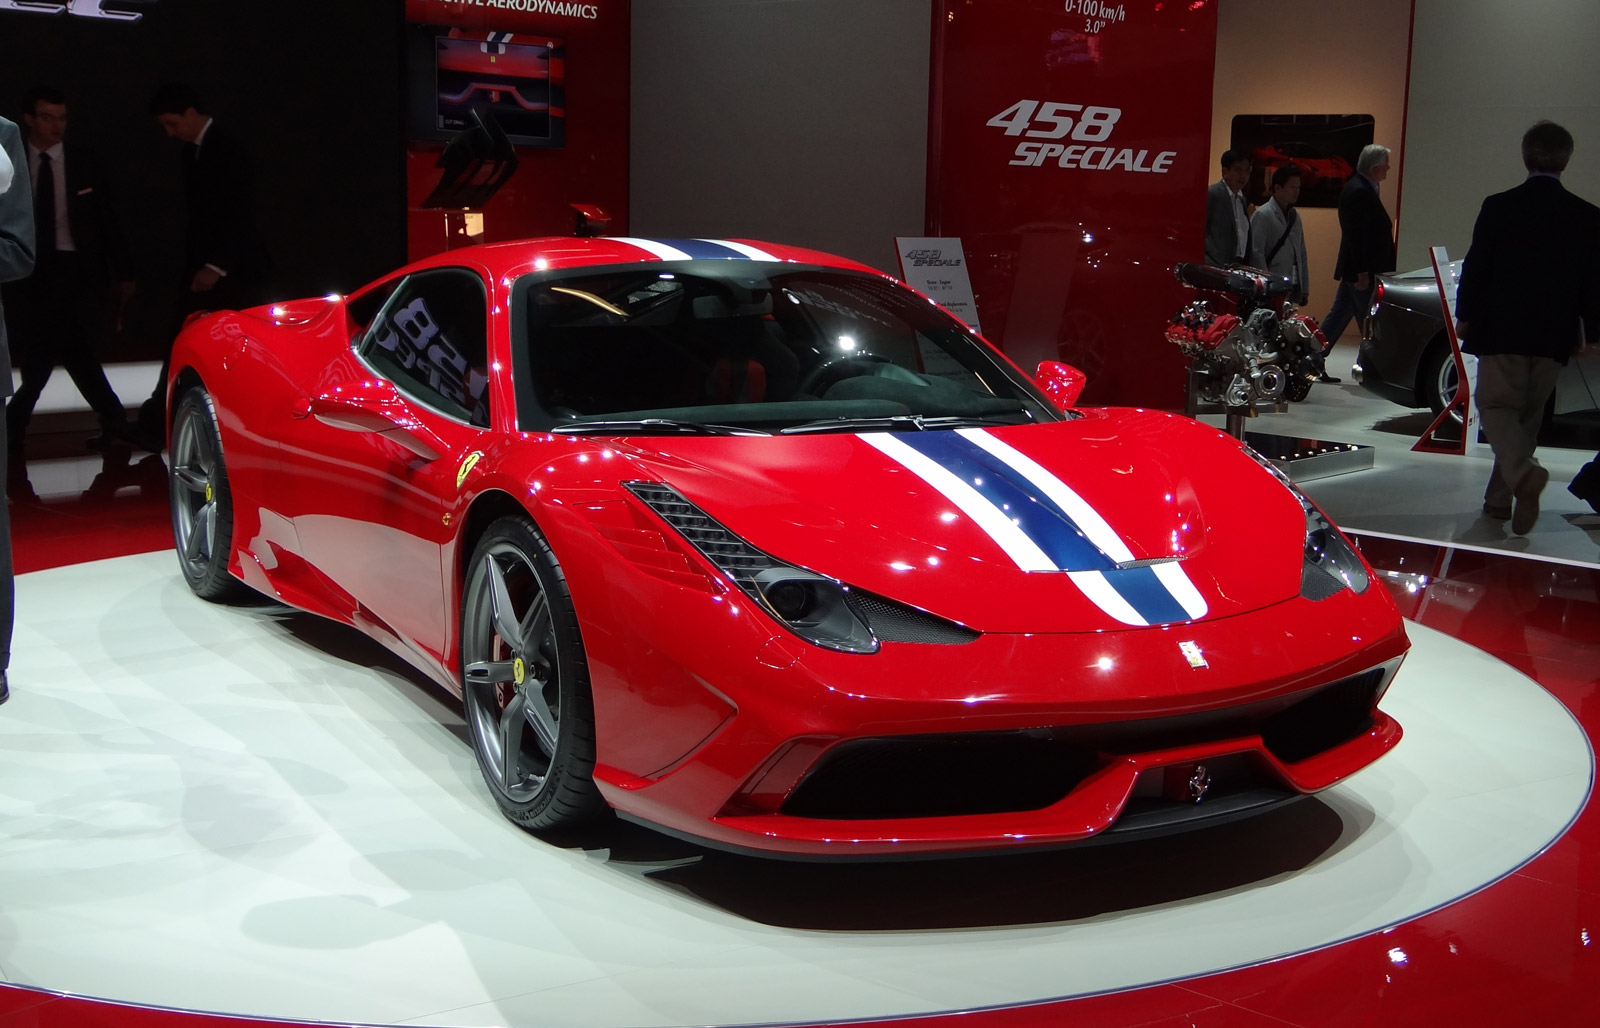 ferrari 458 speciale s technology explained through video. Black Bedroom Furniture Sets. Home Design Ideas